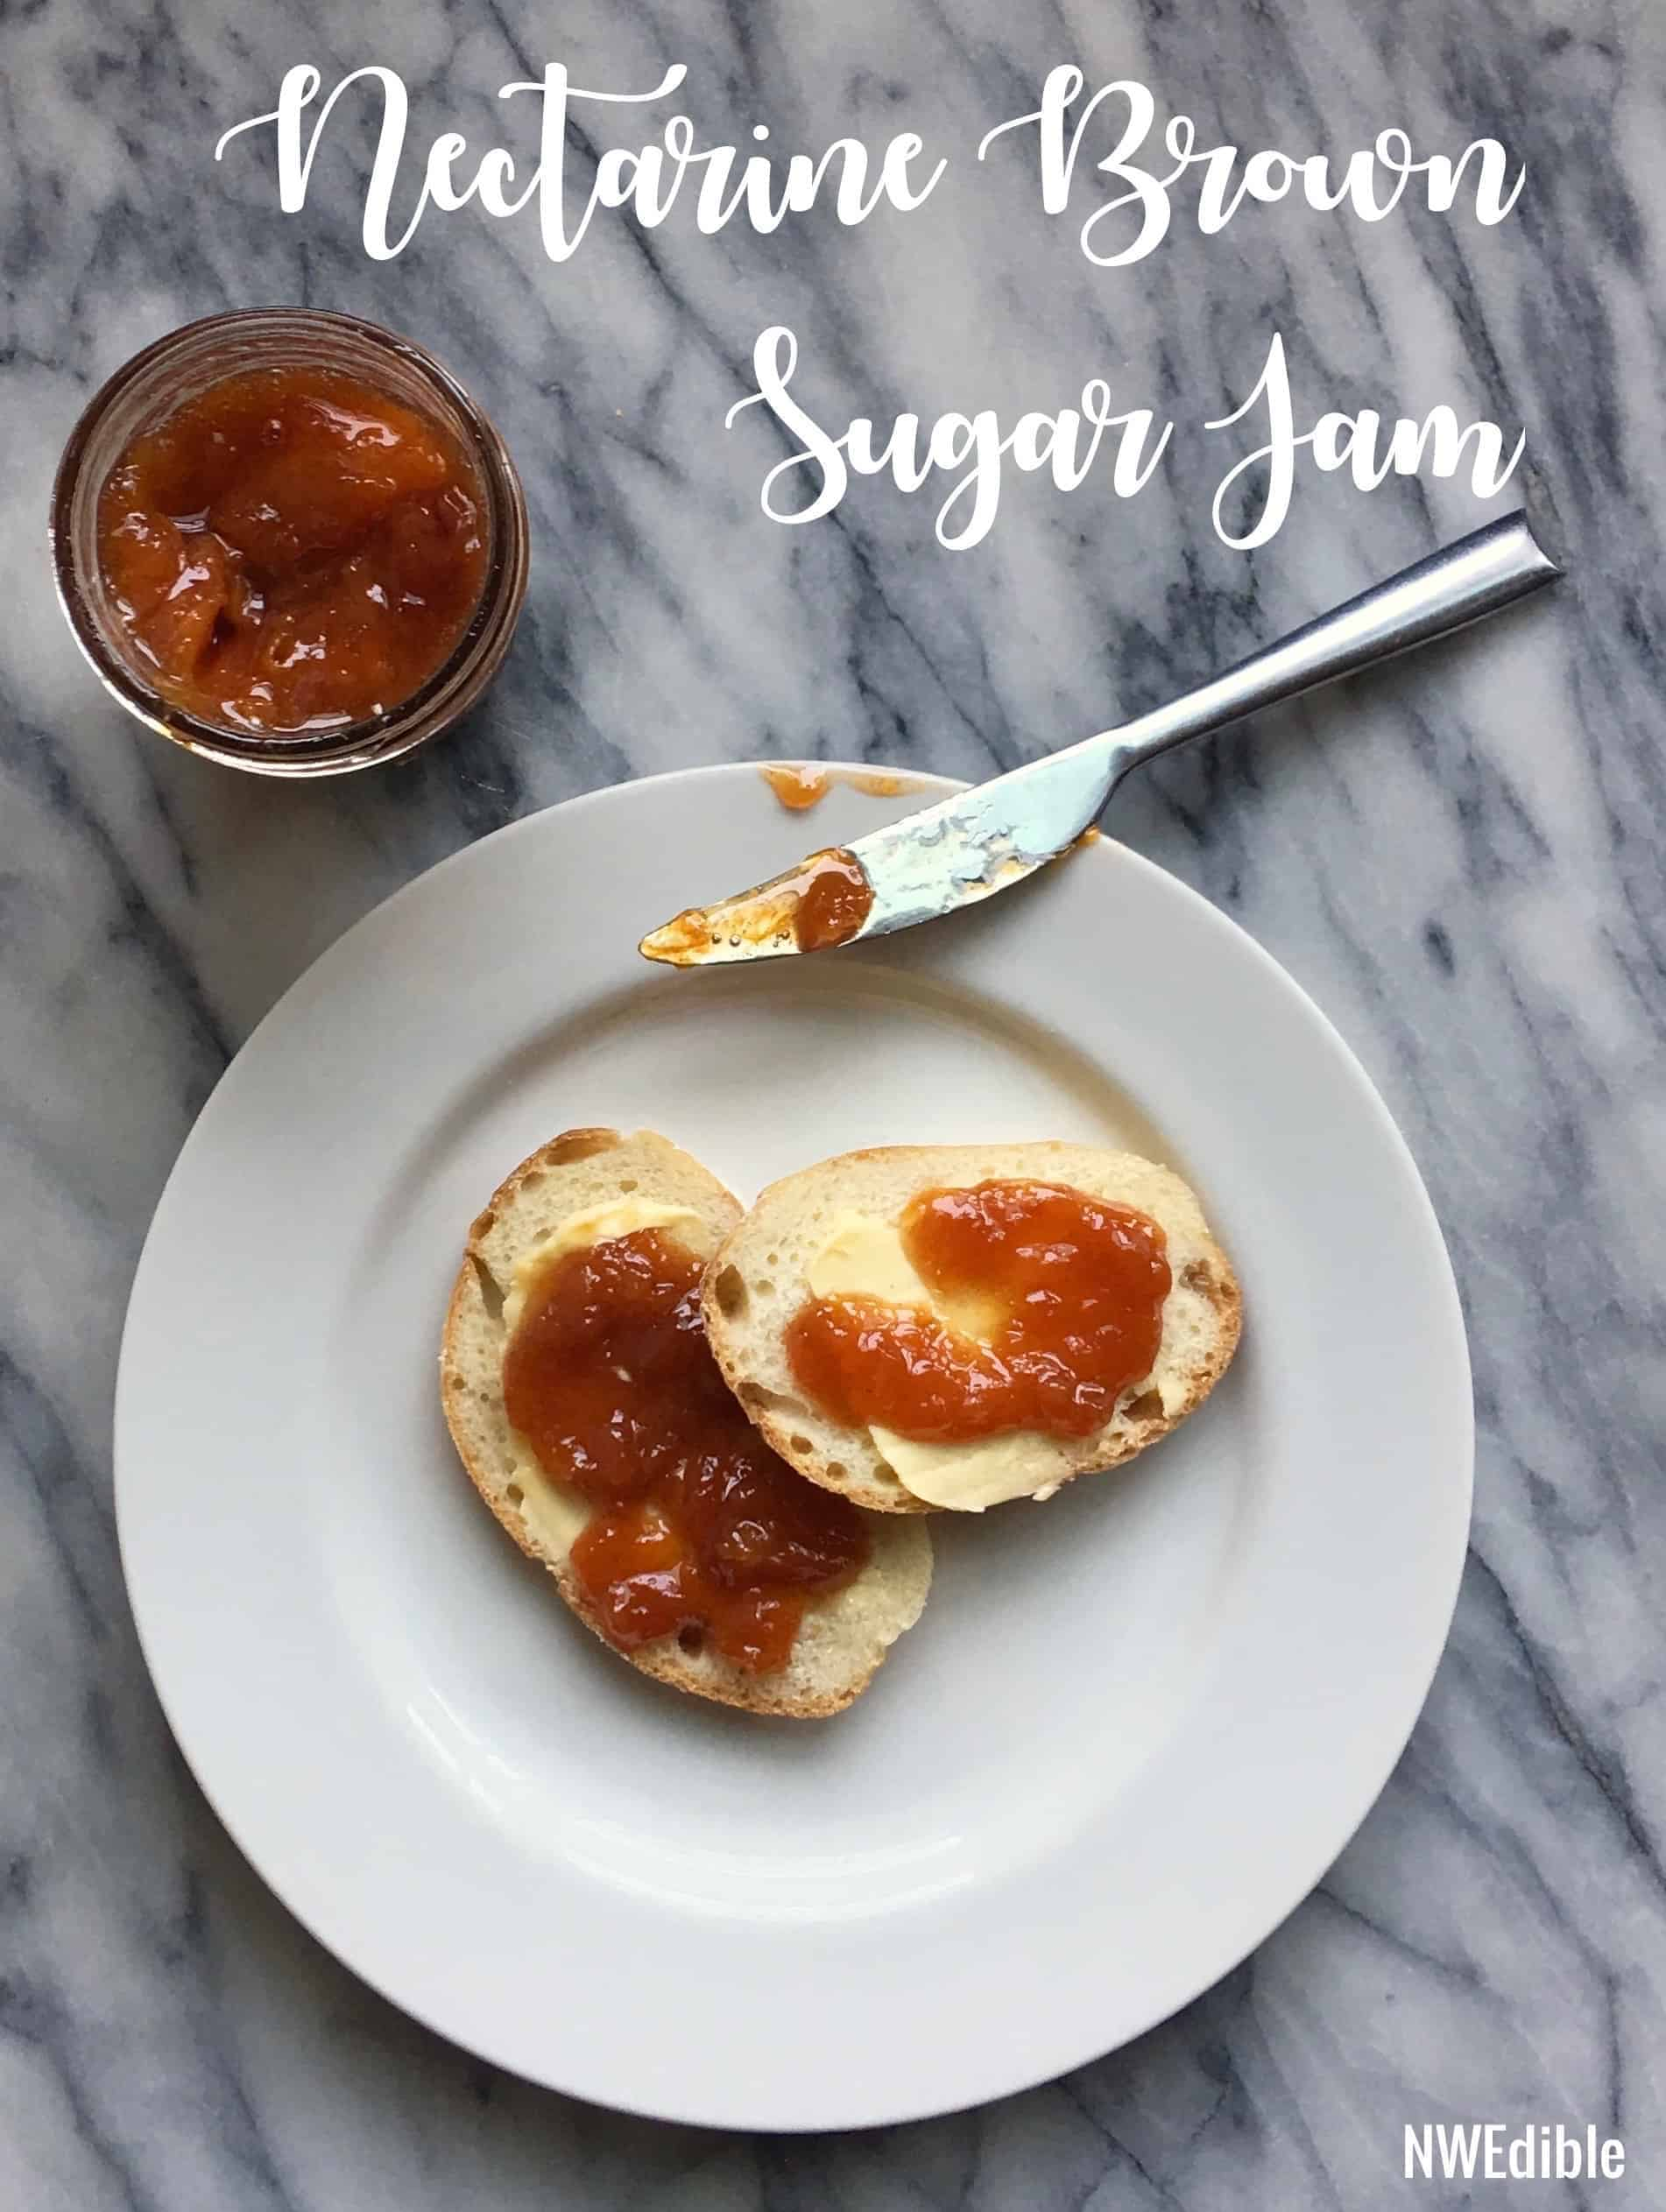 Nectarine Brown Sugar Jam Recipe